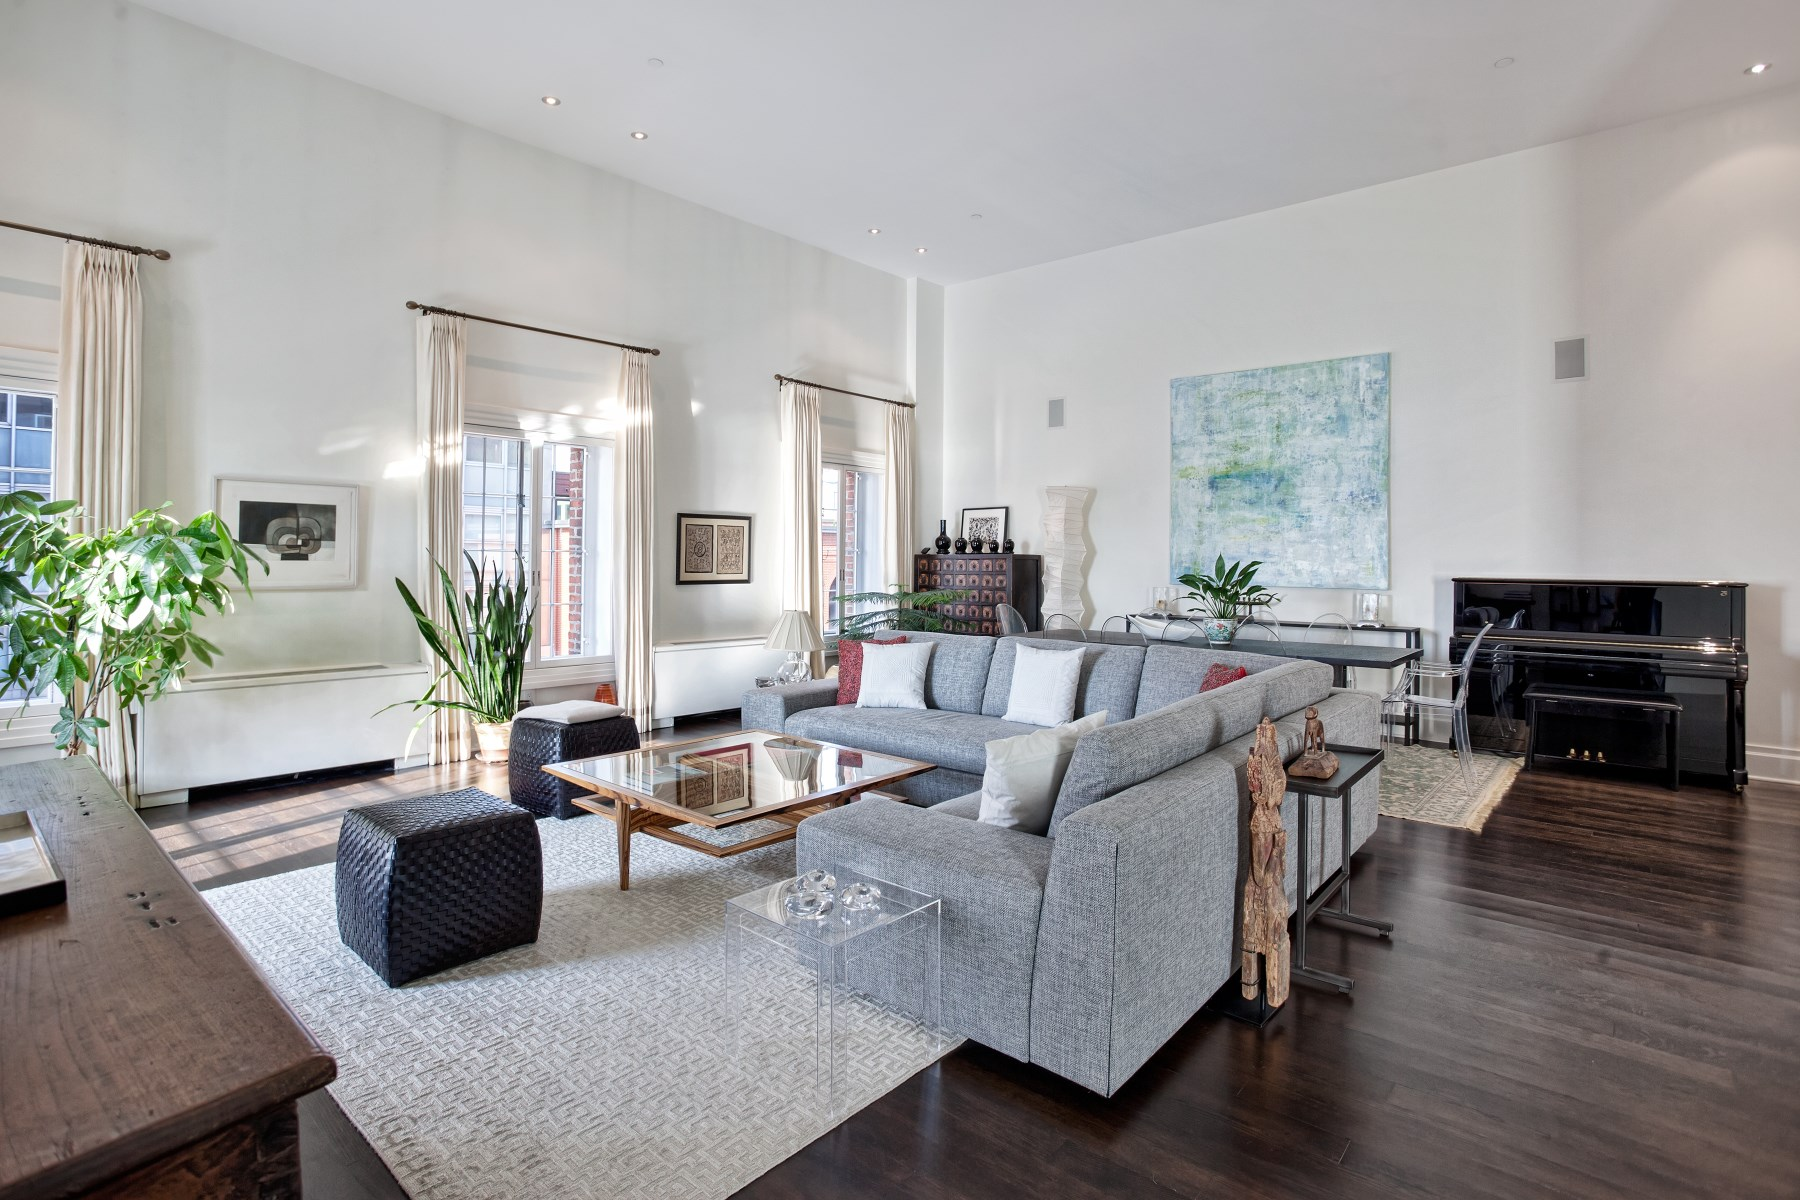 Additional photo for property listing at Corner PH Duplex Loft w/ Outdoor Space 79 Laight Street Apt 6D New York, New York 10013 United States